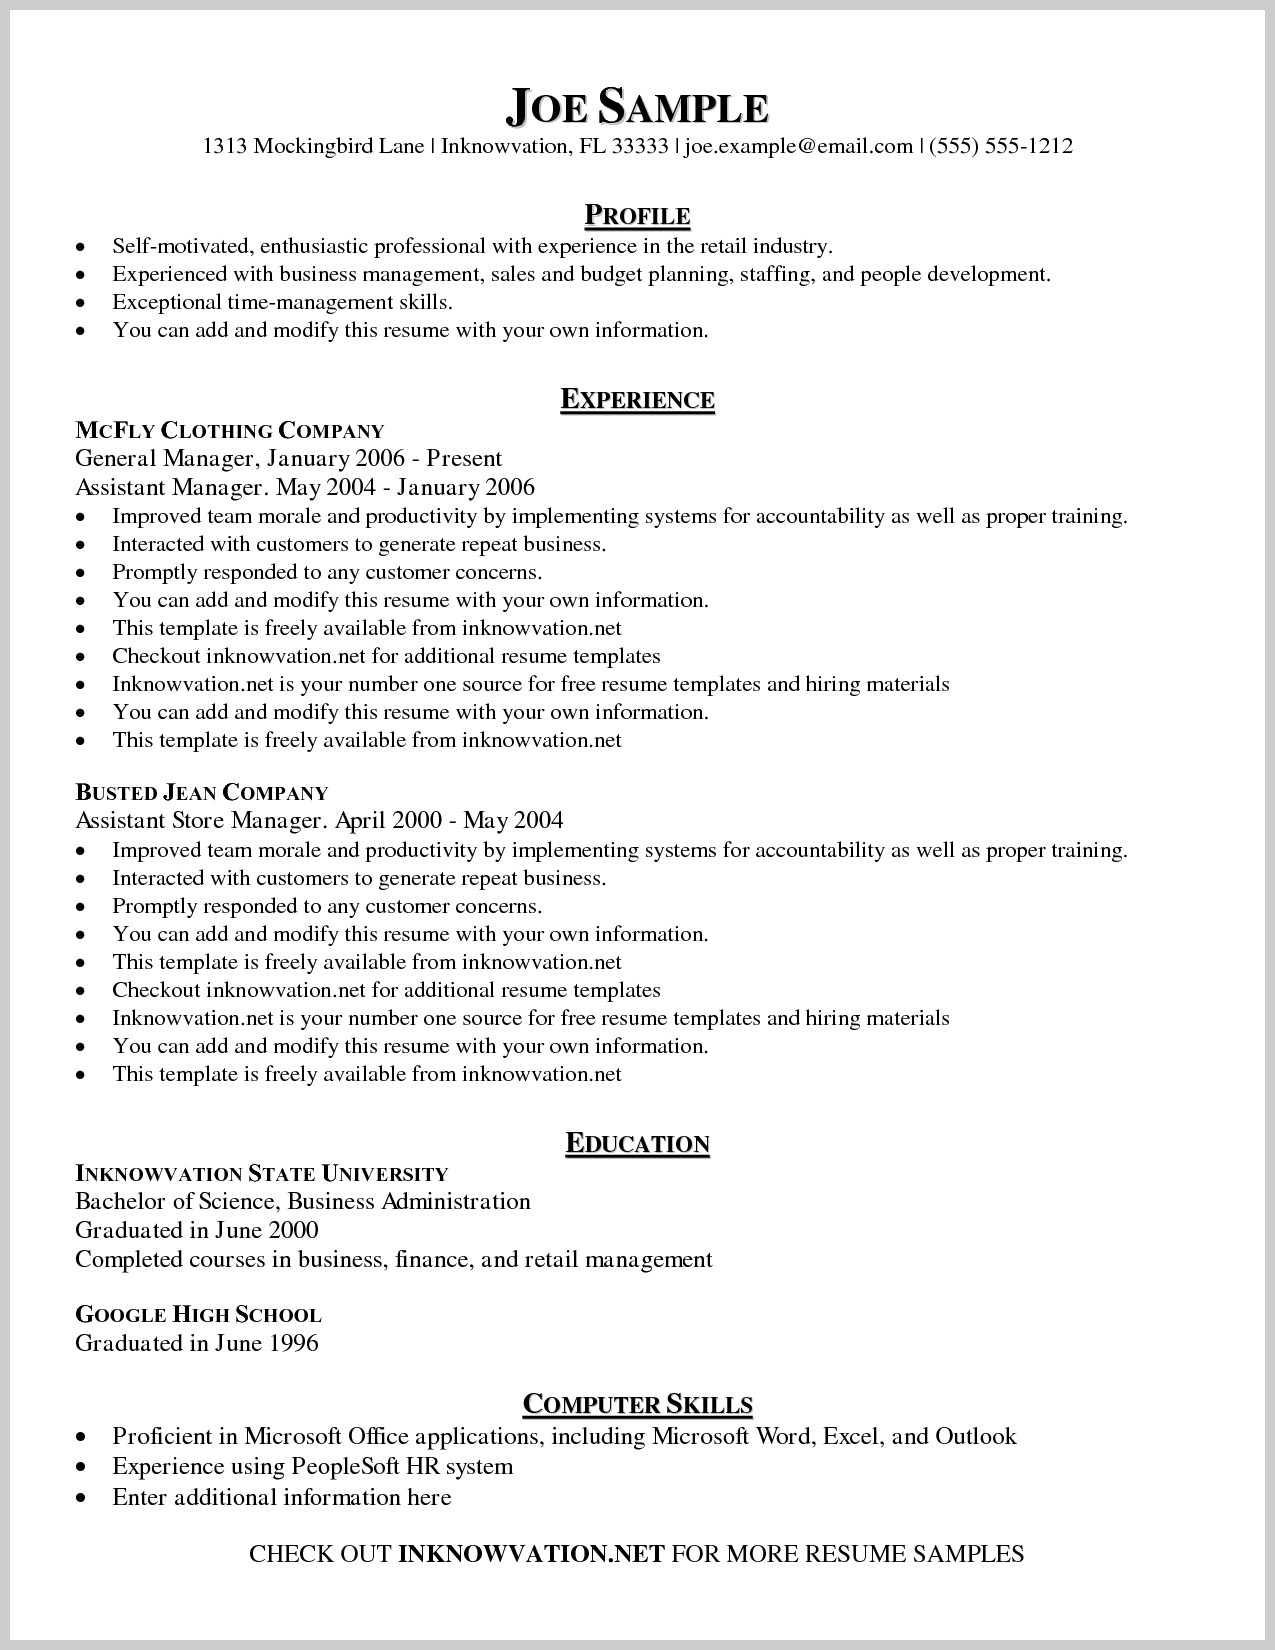 Free Resume Templates Cover Letter Template Jeopardy Powerpoint